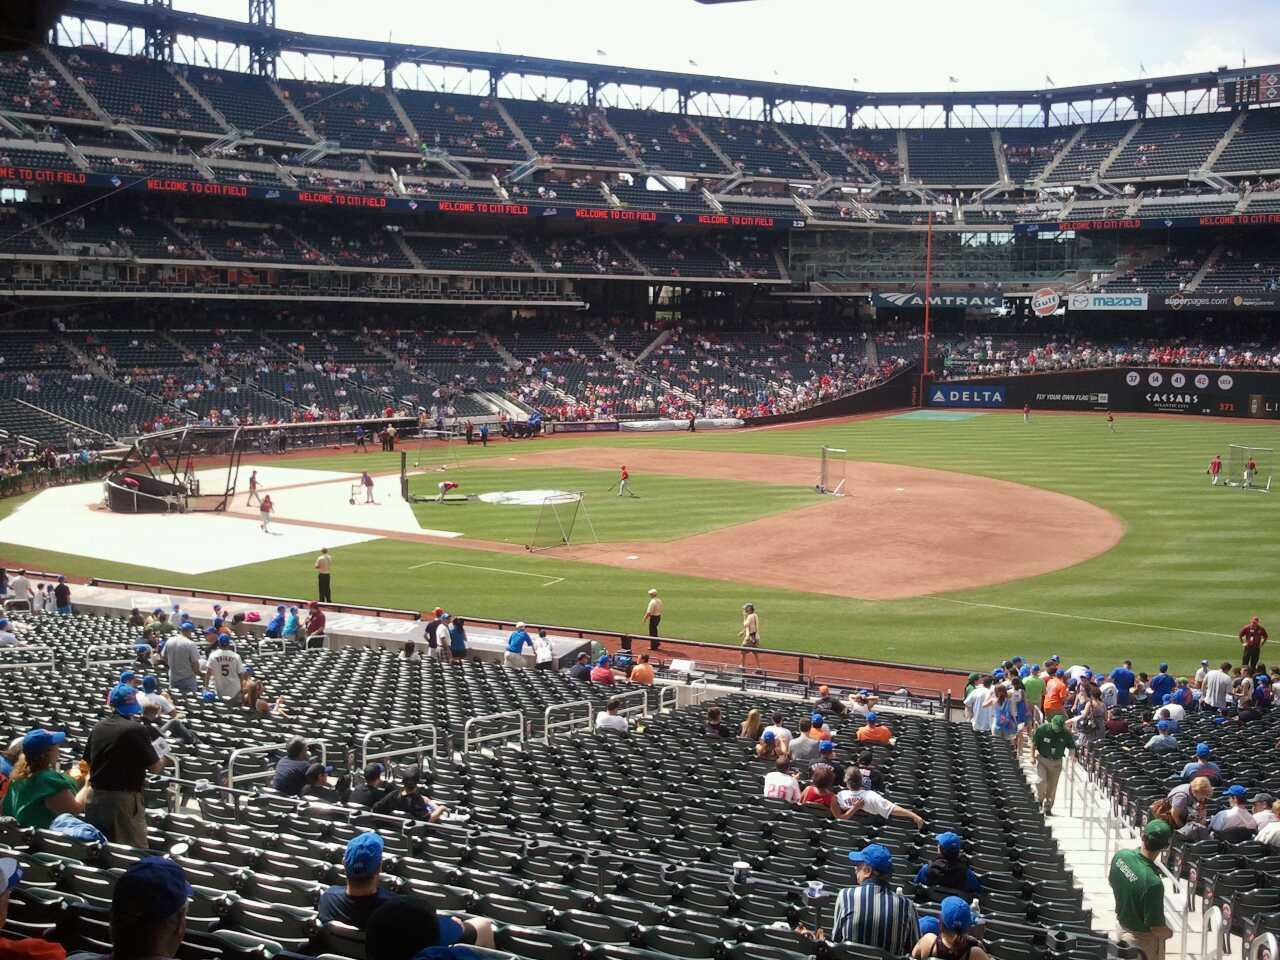 Citi Field section 111 row 32 seat 15 - New York Mets vs ...